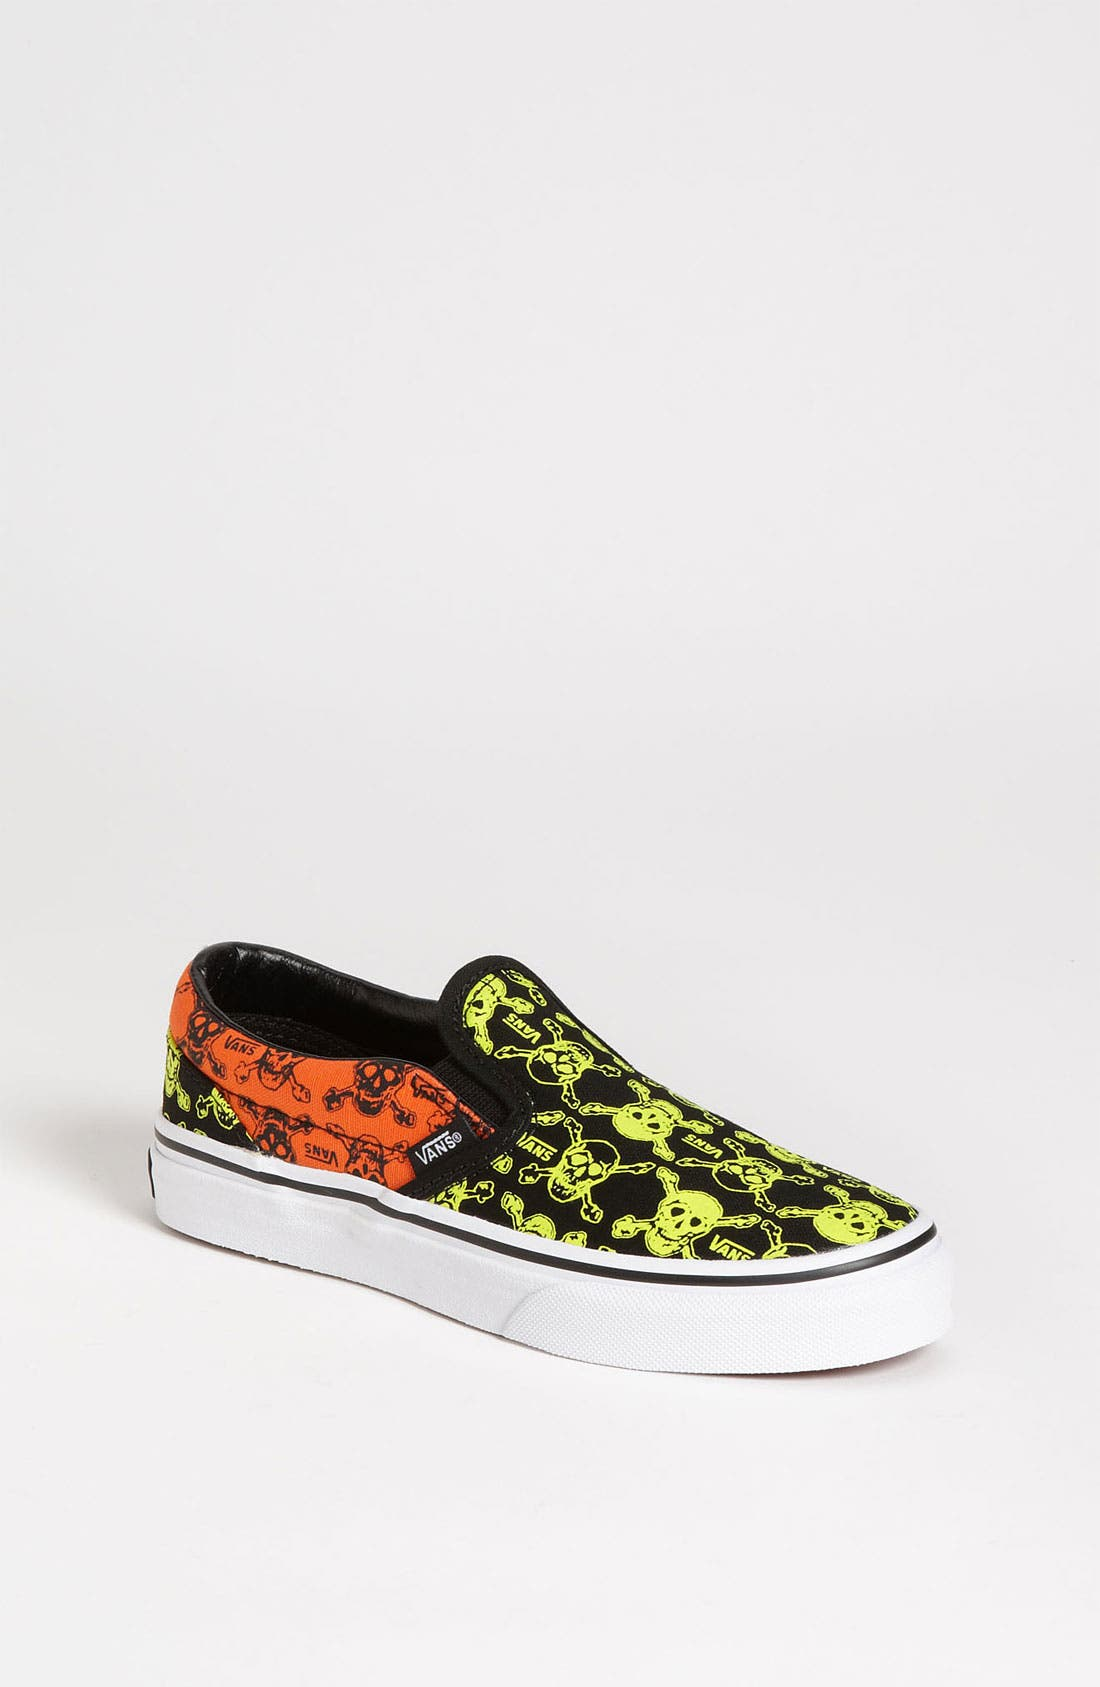 Alternate Image 1 Selected - Vans 'Skull' Slip-On (Toddler, Little Kid & Big Kid)